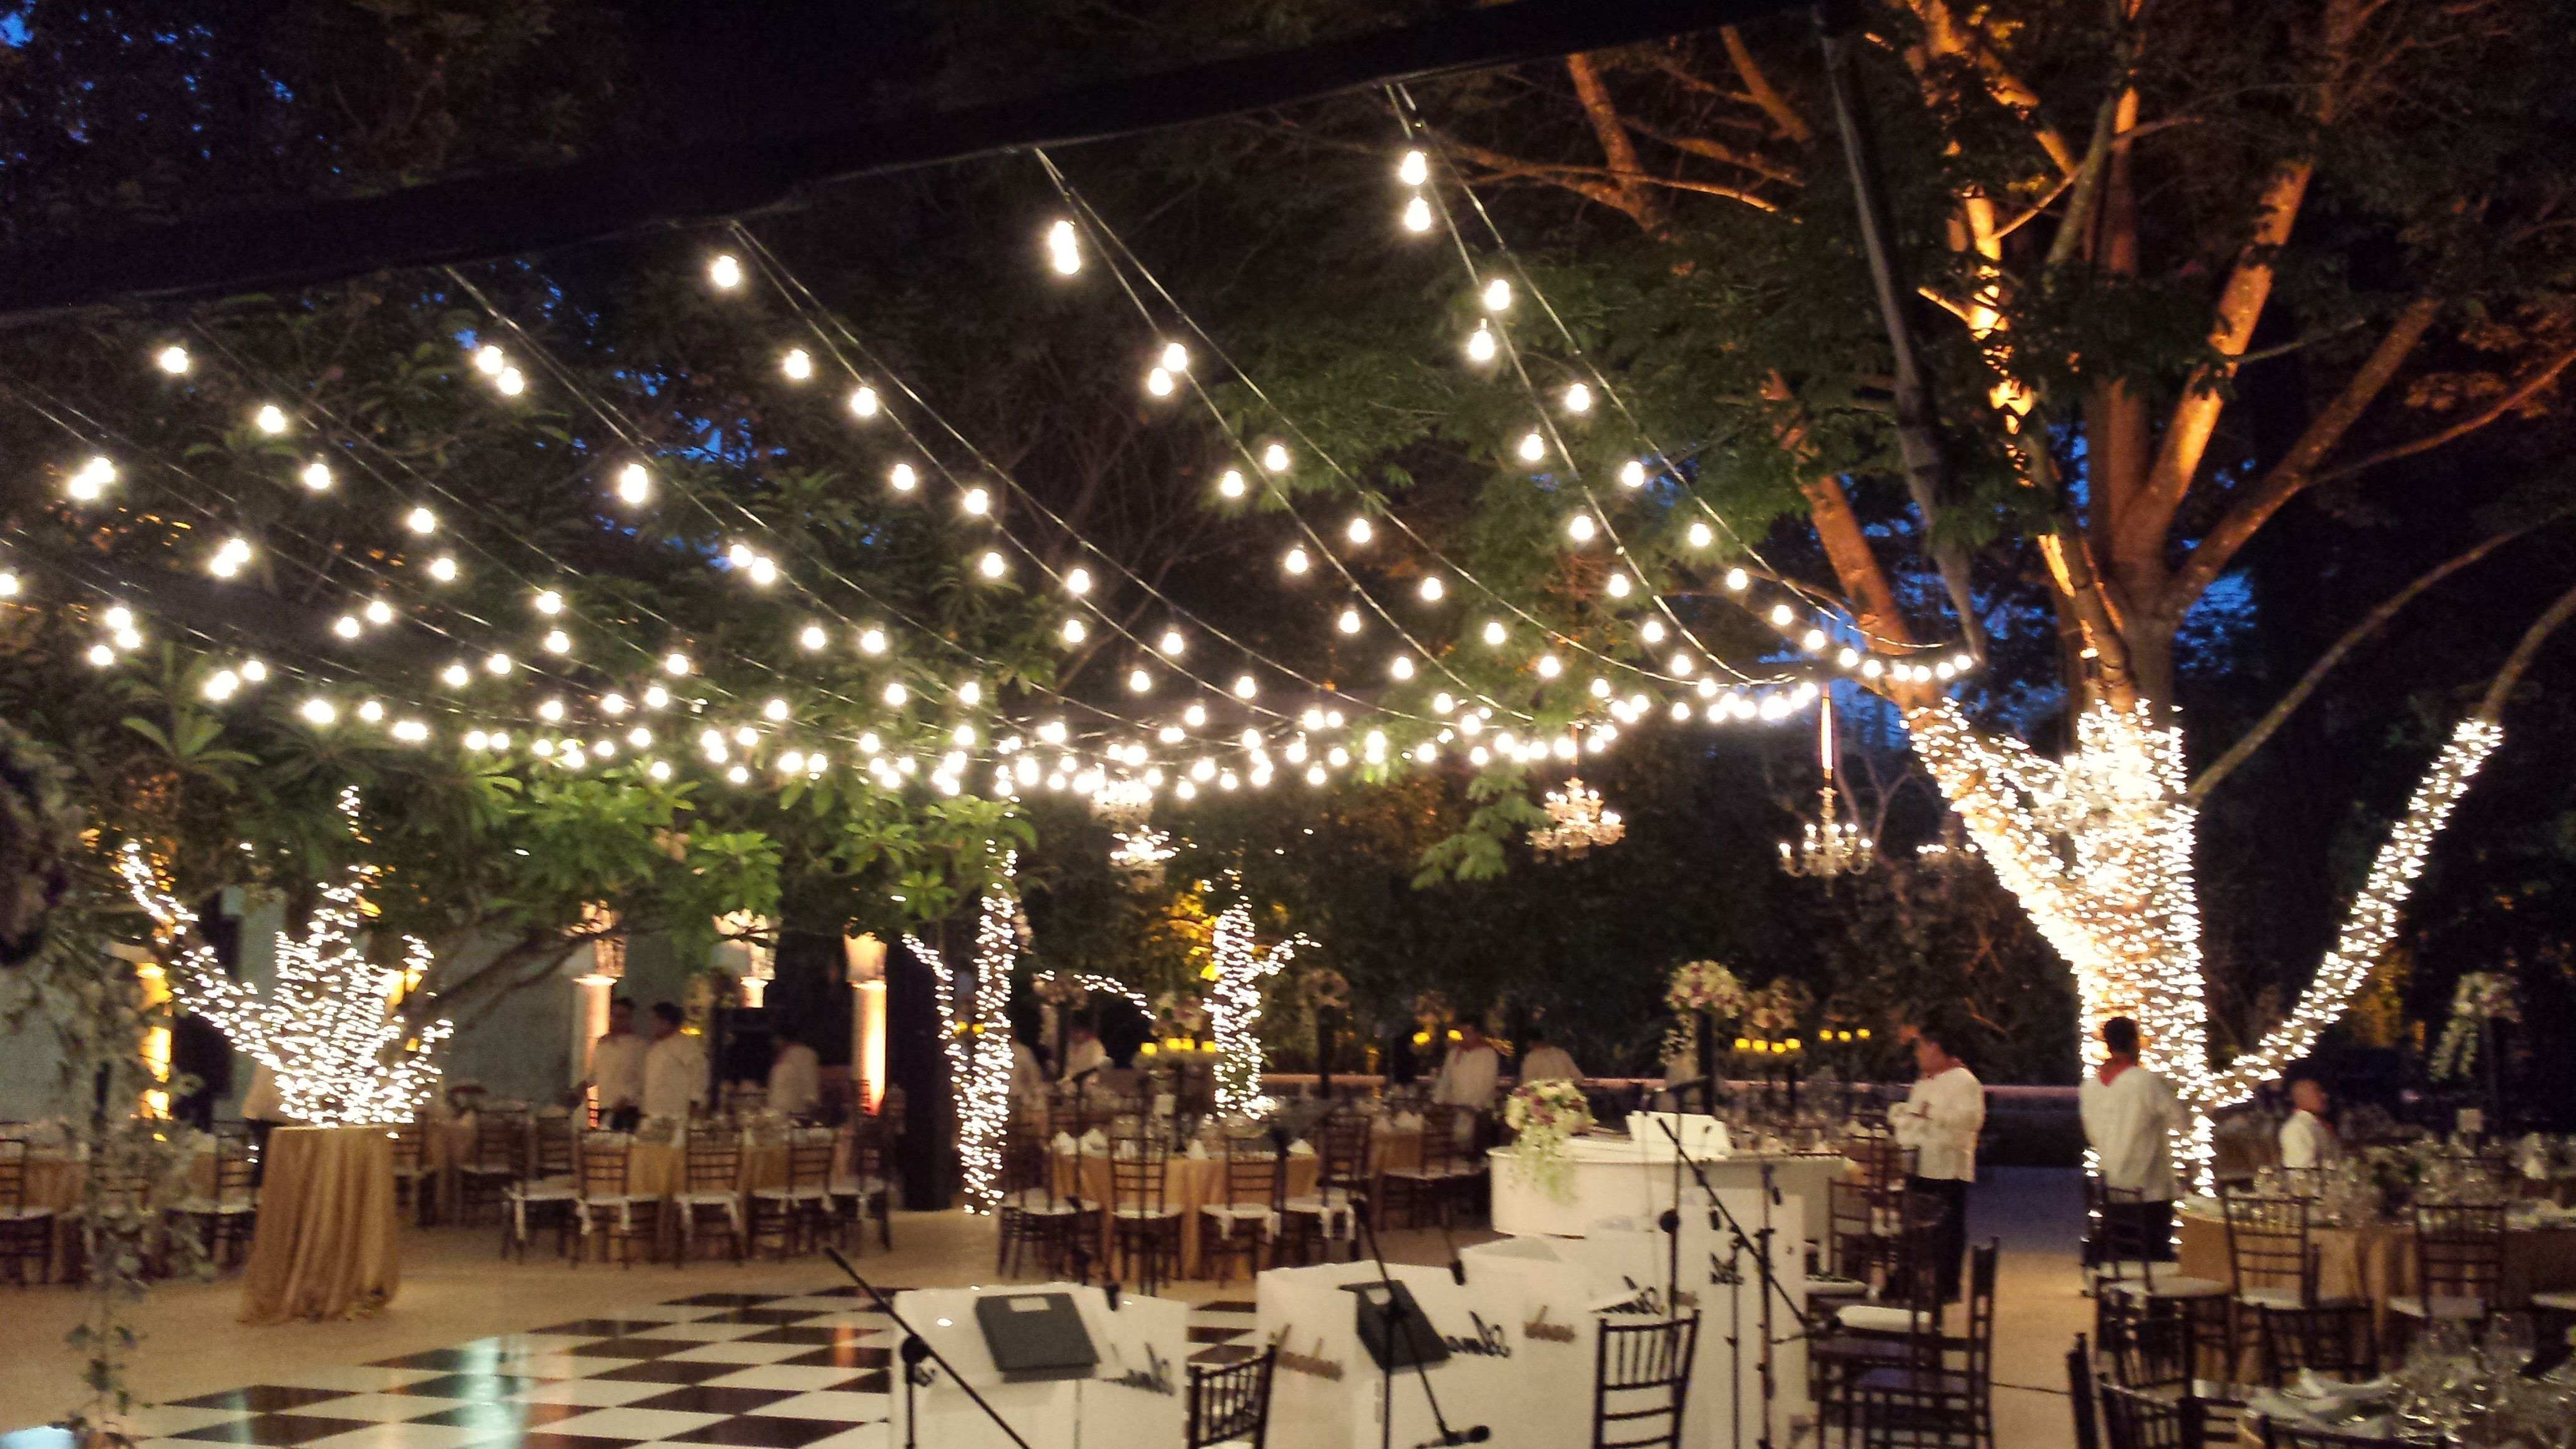 Get Your String Lights In Shape With Por Patio Light Hanging Patterns